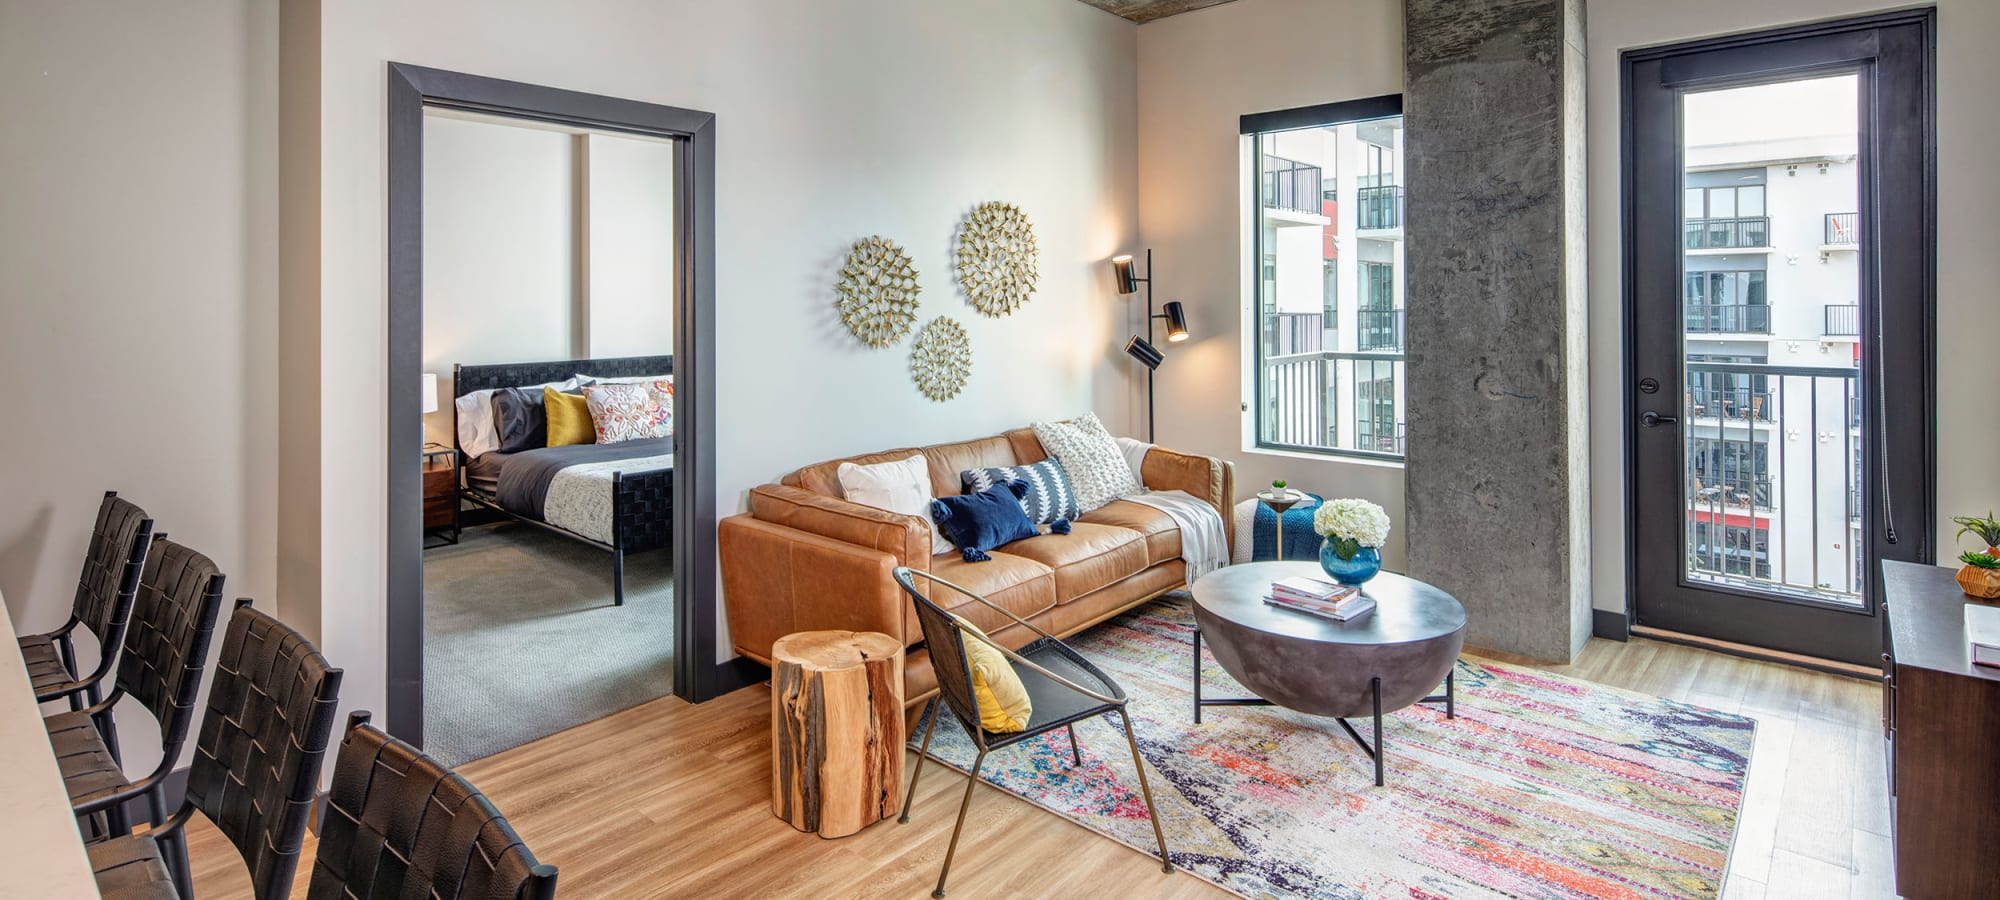 high ceilings and decorated living room at The Local Apartments in Tempe, Arizona